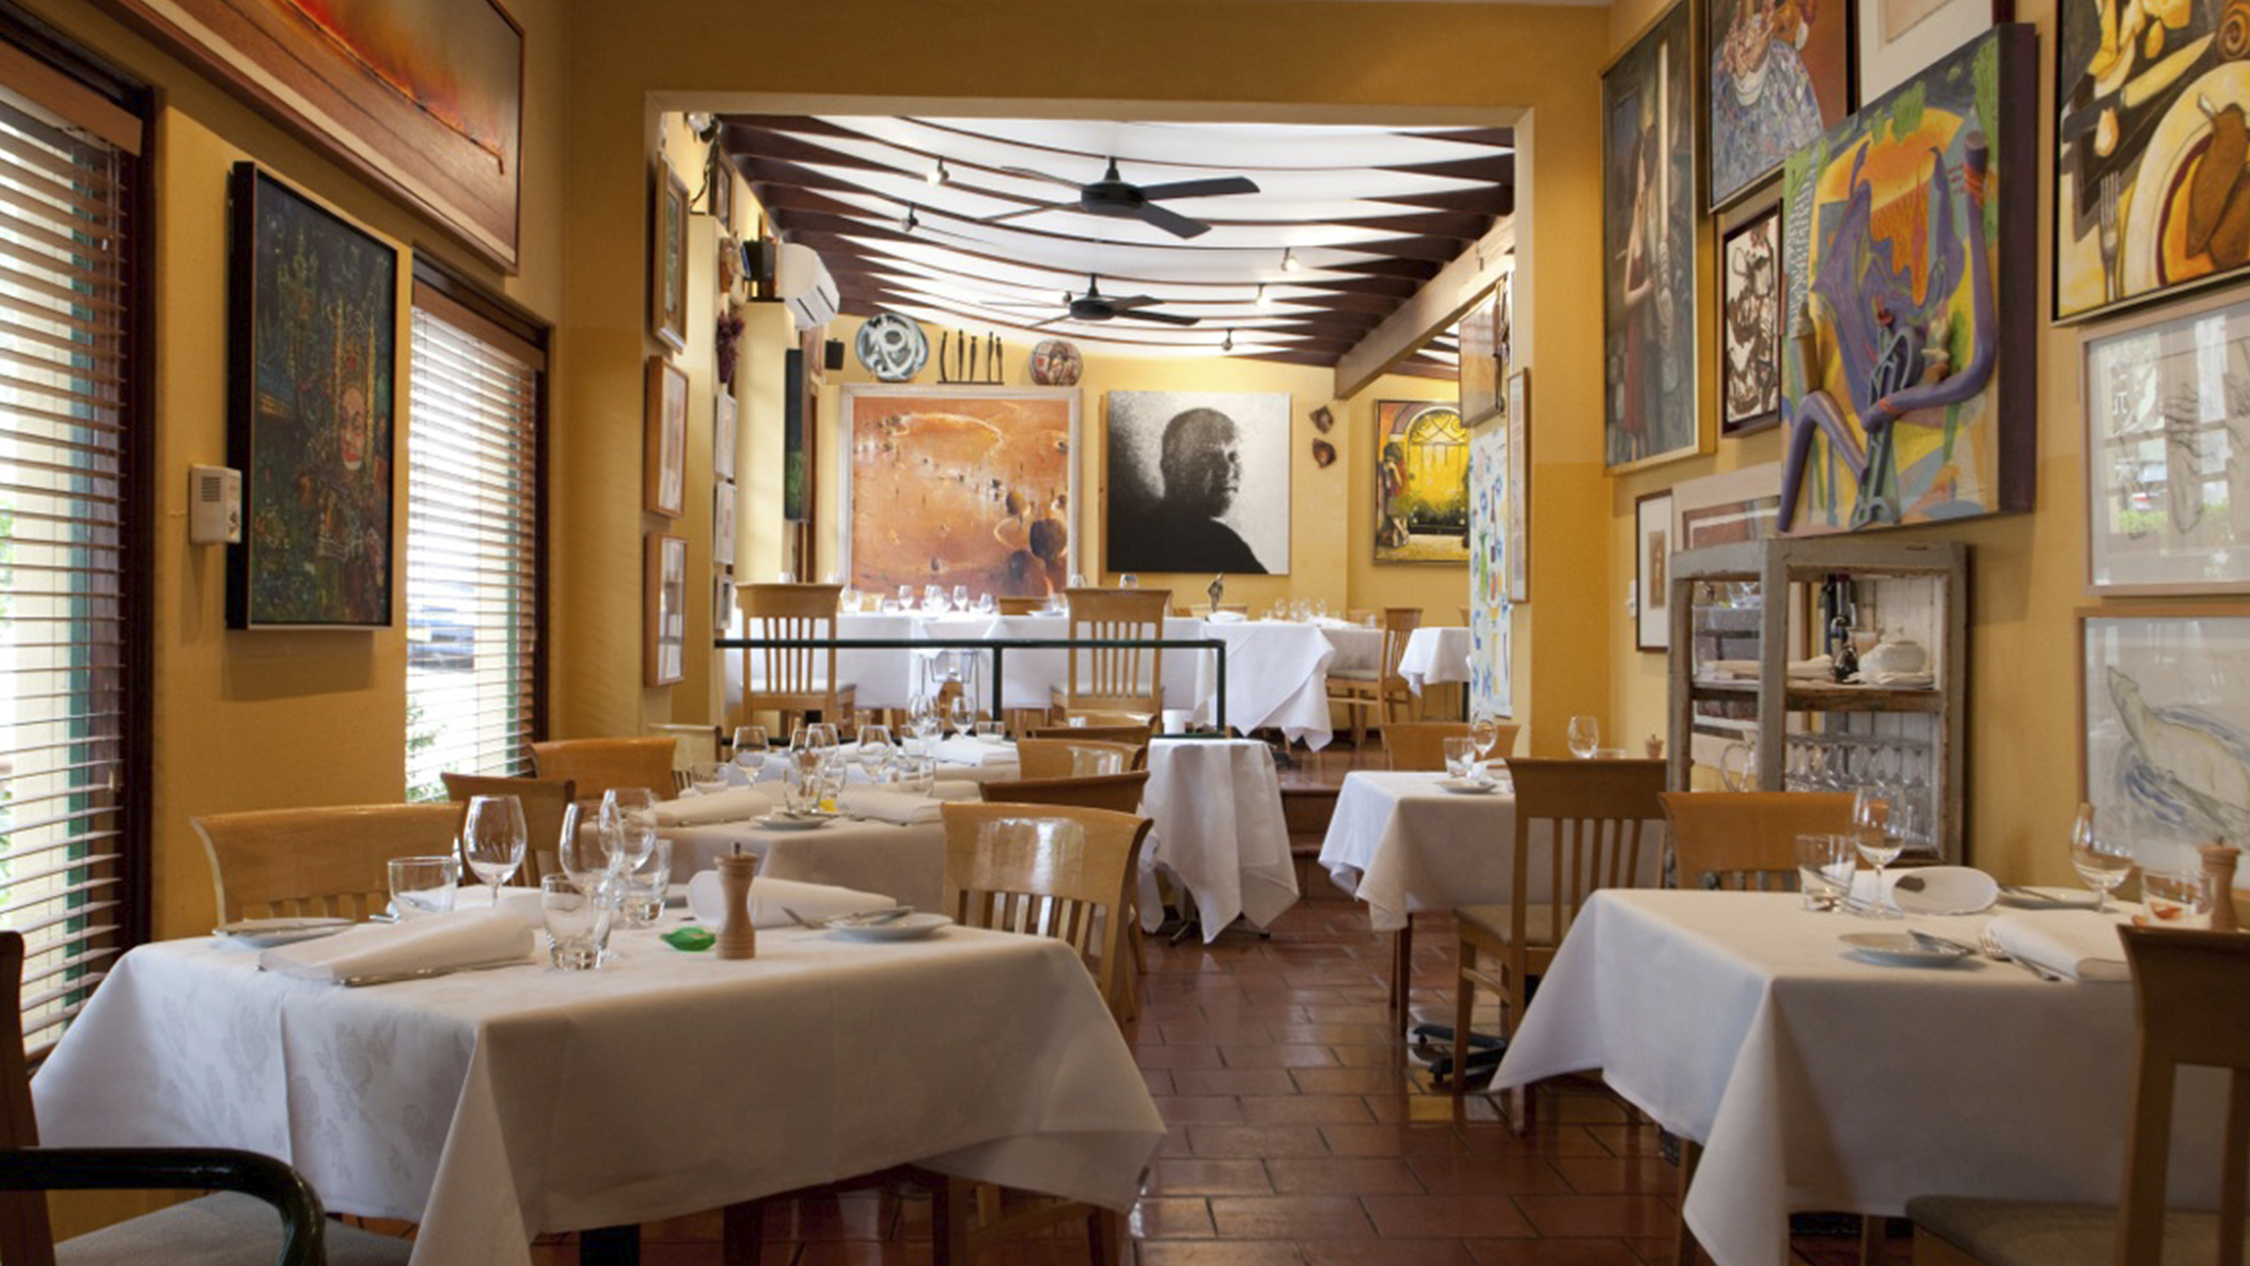 The art-filled dining room in Paddington